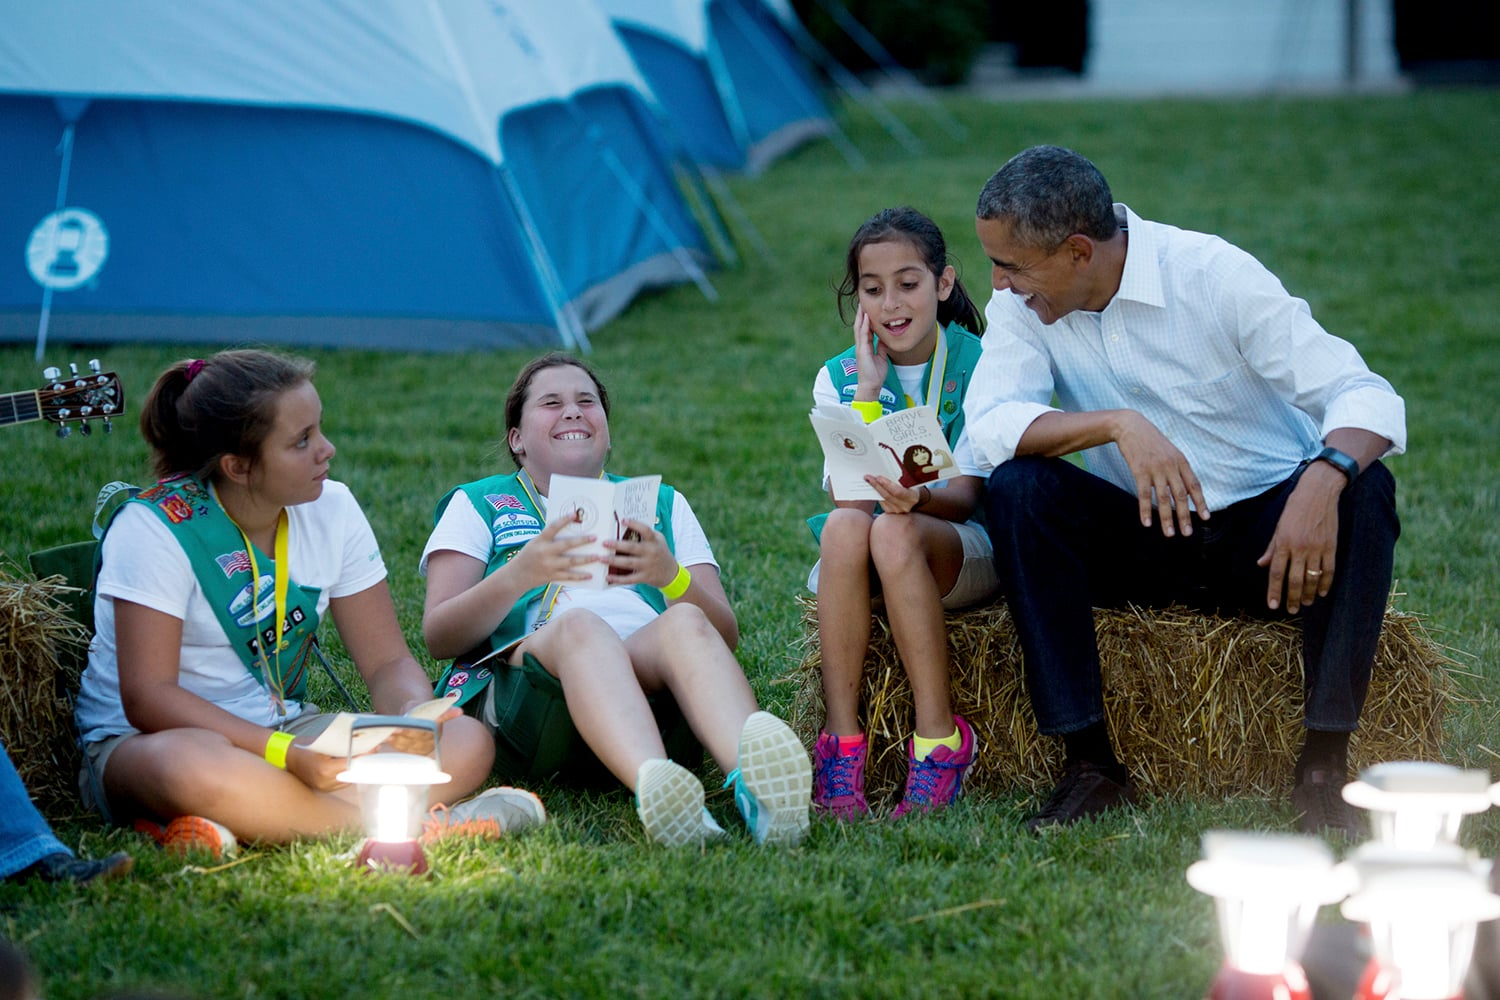 """President Barack Obama and First Lady Michelle Obama sing songs with Girl Scouts during the White House Campout, as part of """"Let's Move! Outside"""" on the South Lawn. 2015. (Official White House Photo by Chuck Kennedy)."""